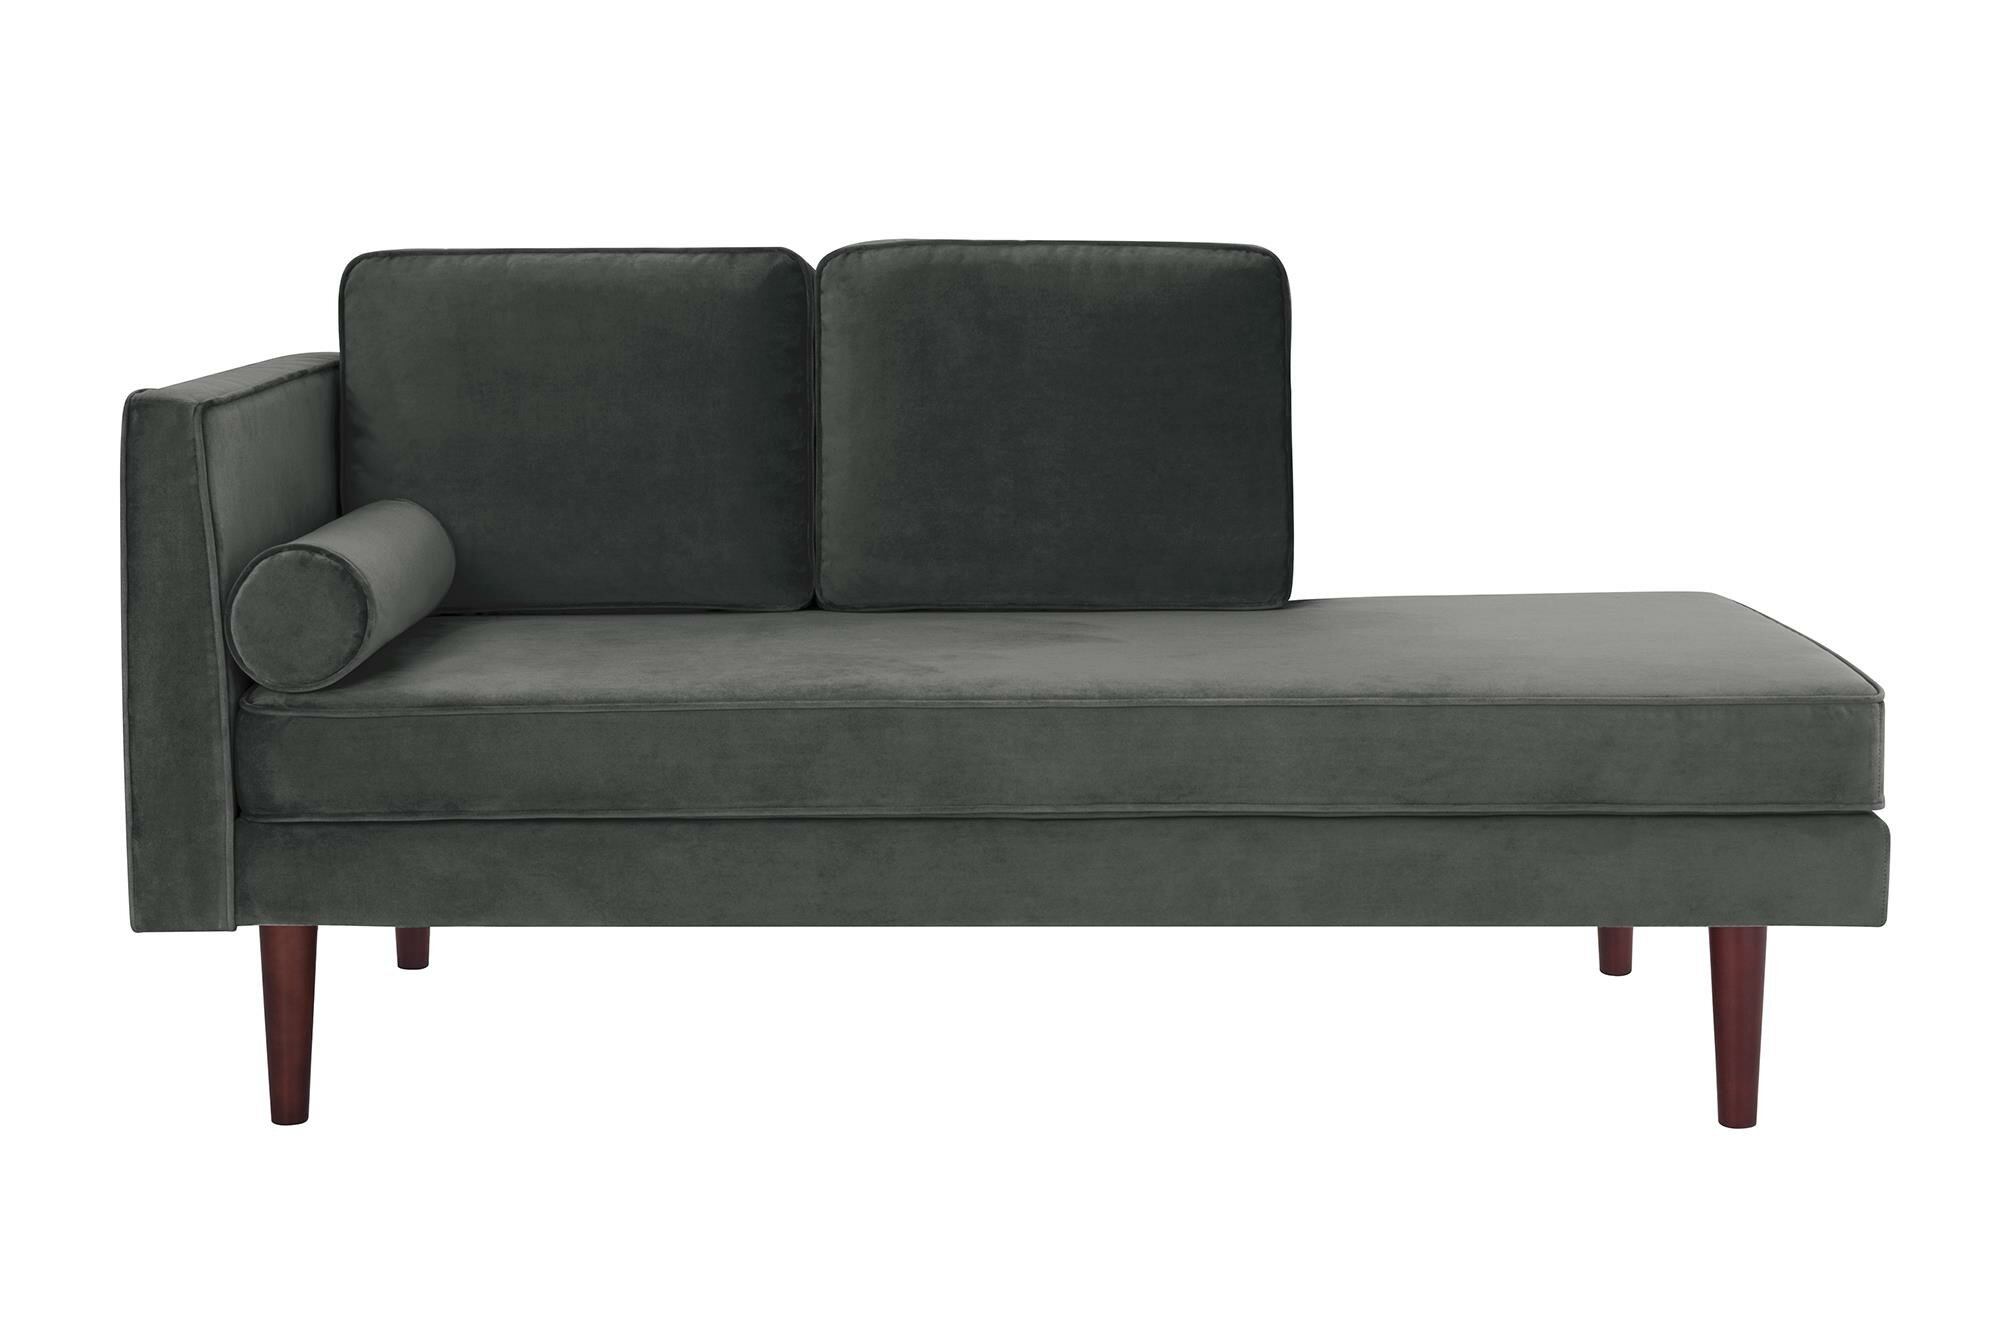 pasadena made longue the chairs chaise one lounges buy newest furniture in designer accent arm best chaisekravet to with arms order